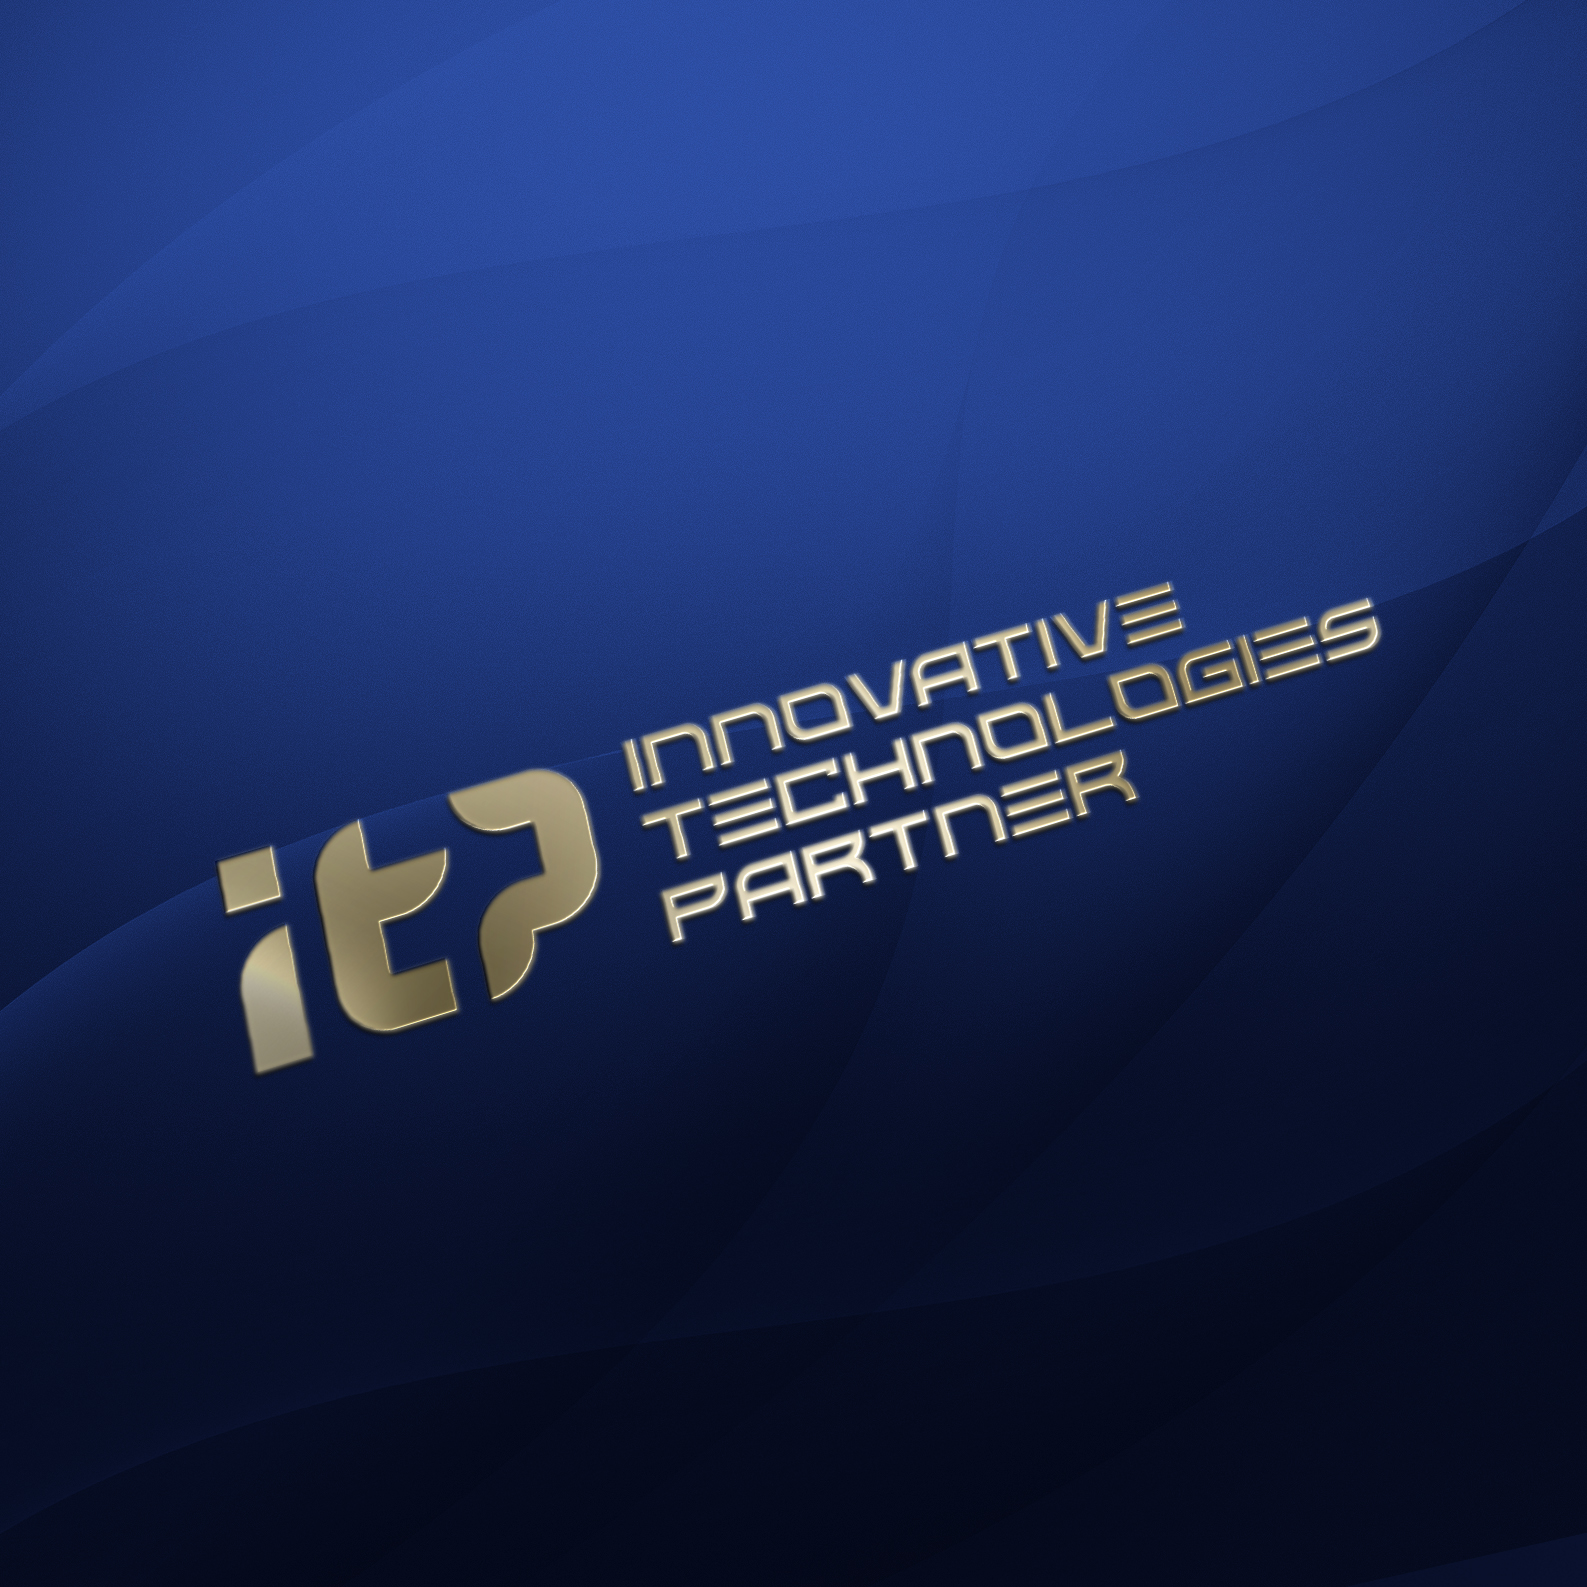 Innovative_Technologies_Partner_logo_blue_02c